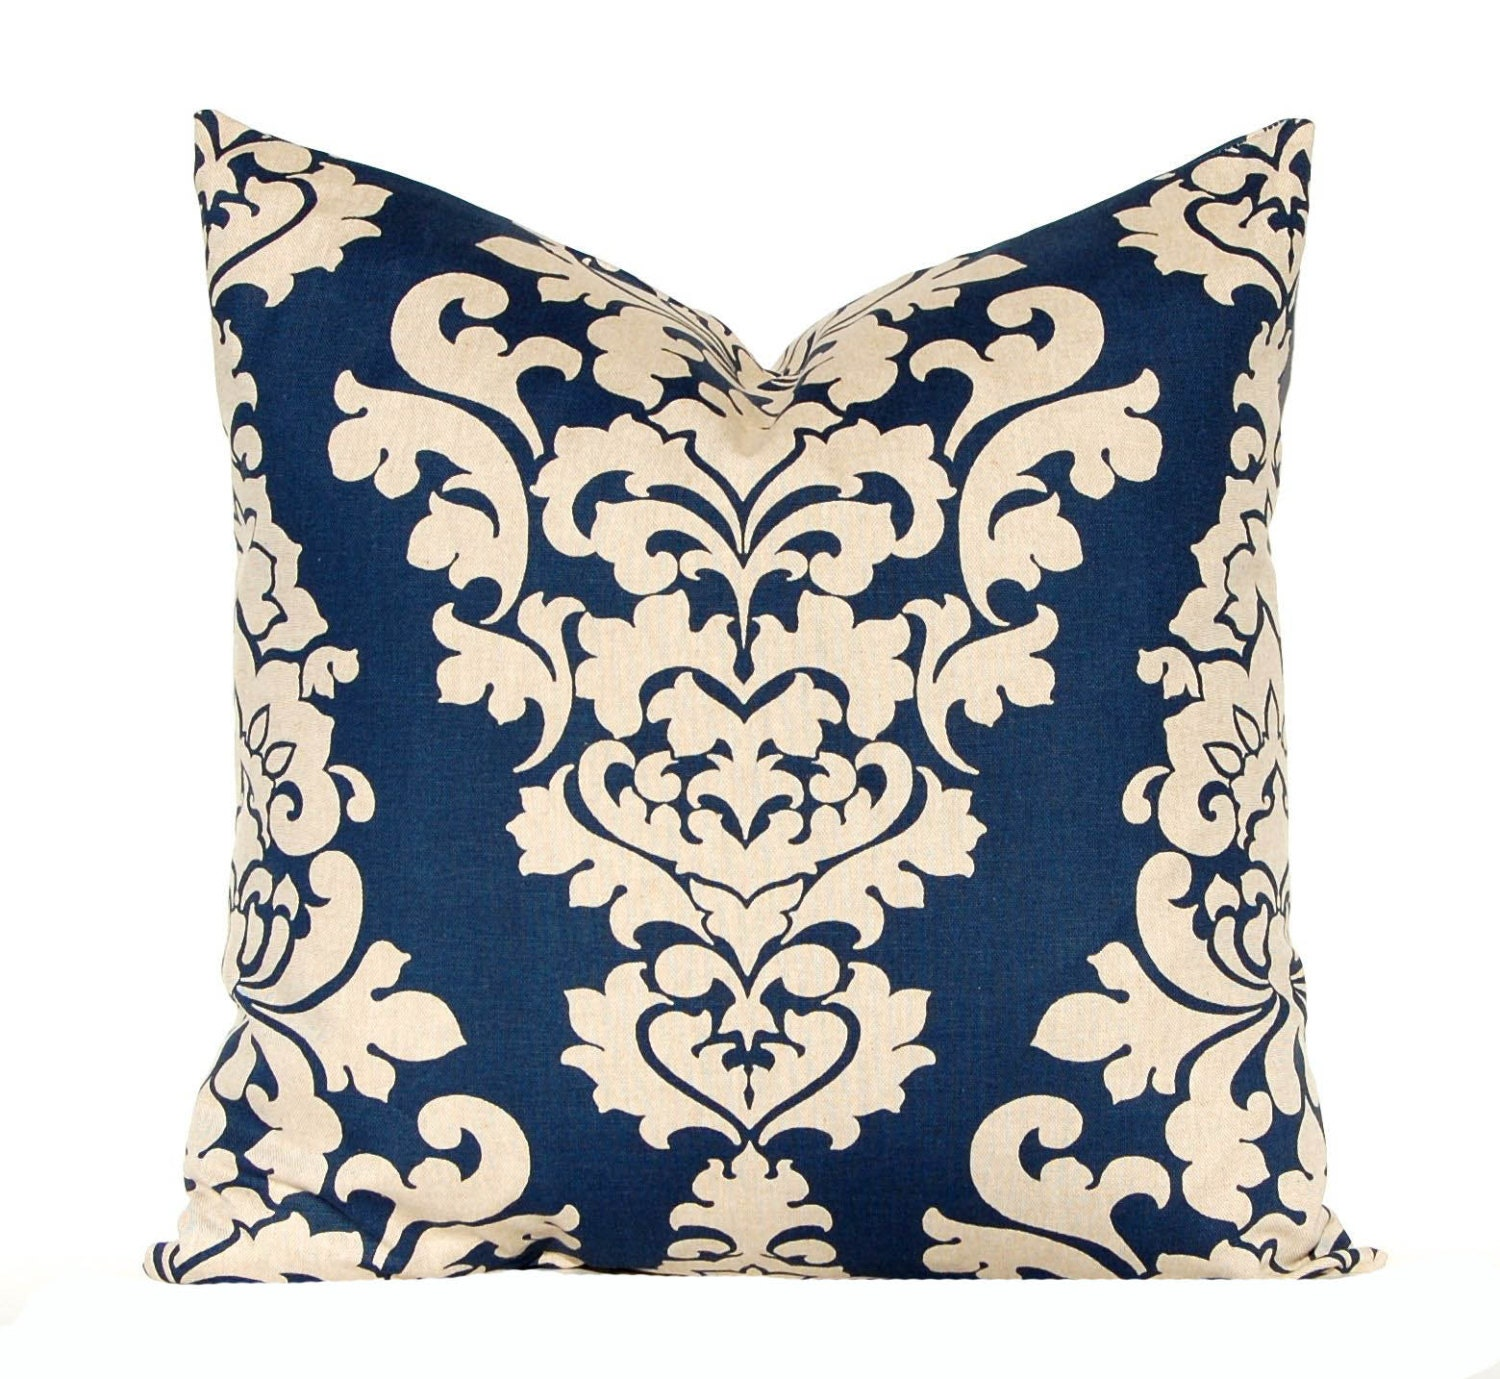 Navy Blue Throw Pillow Covers : Navy Blue Pillow Covers Linen Pillows by CompanyTwentySix on Etsy